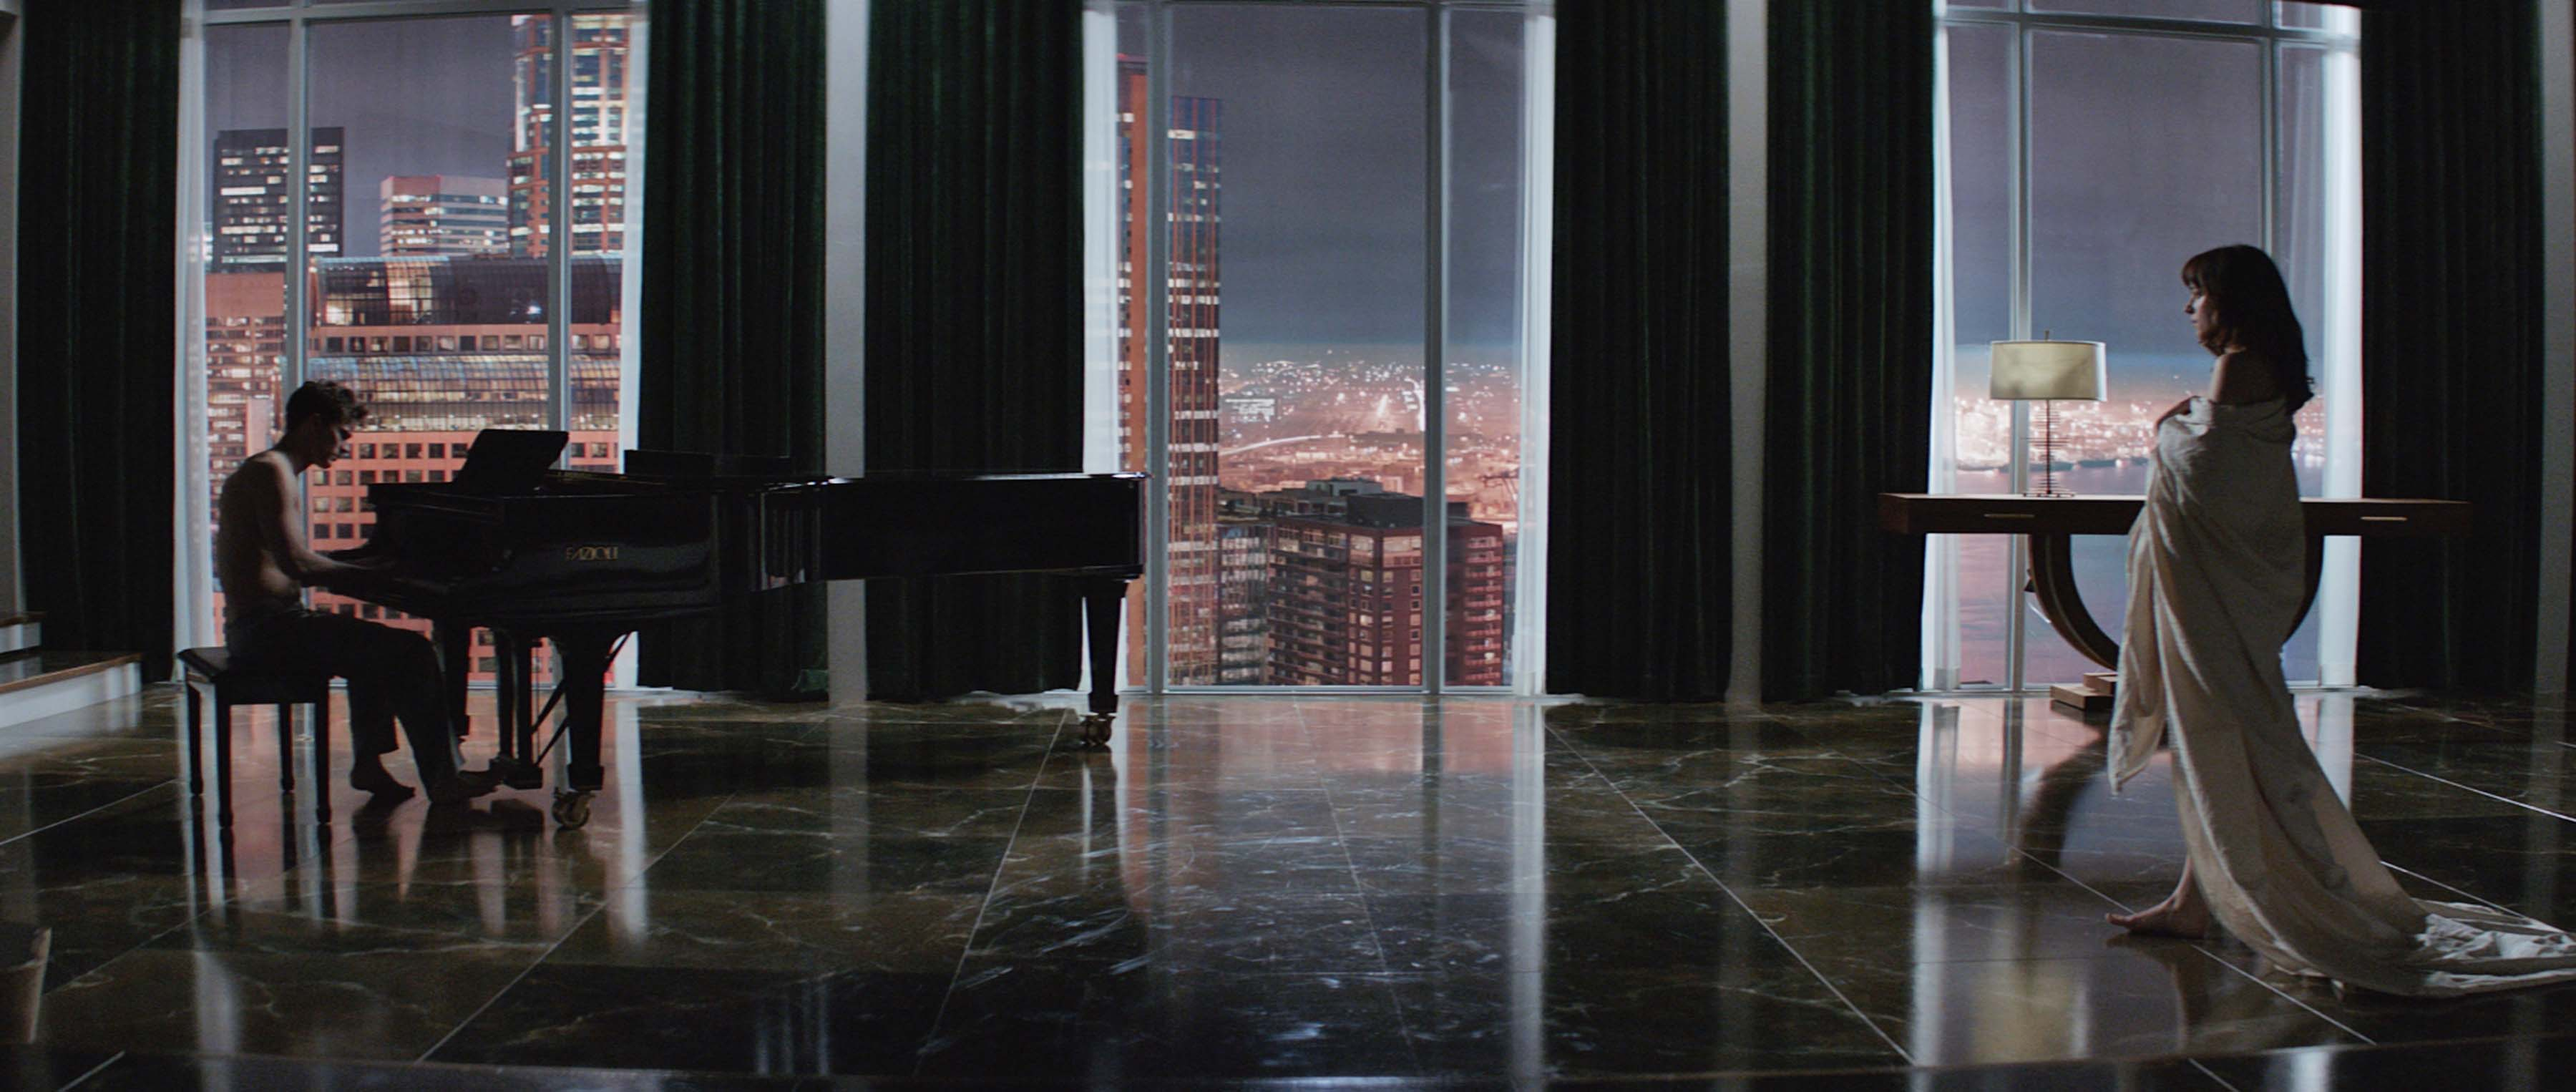 Inside The Screen Fifty Shades of Cinema & Blasting Interiors! 2